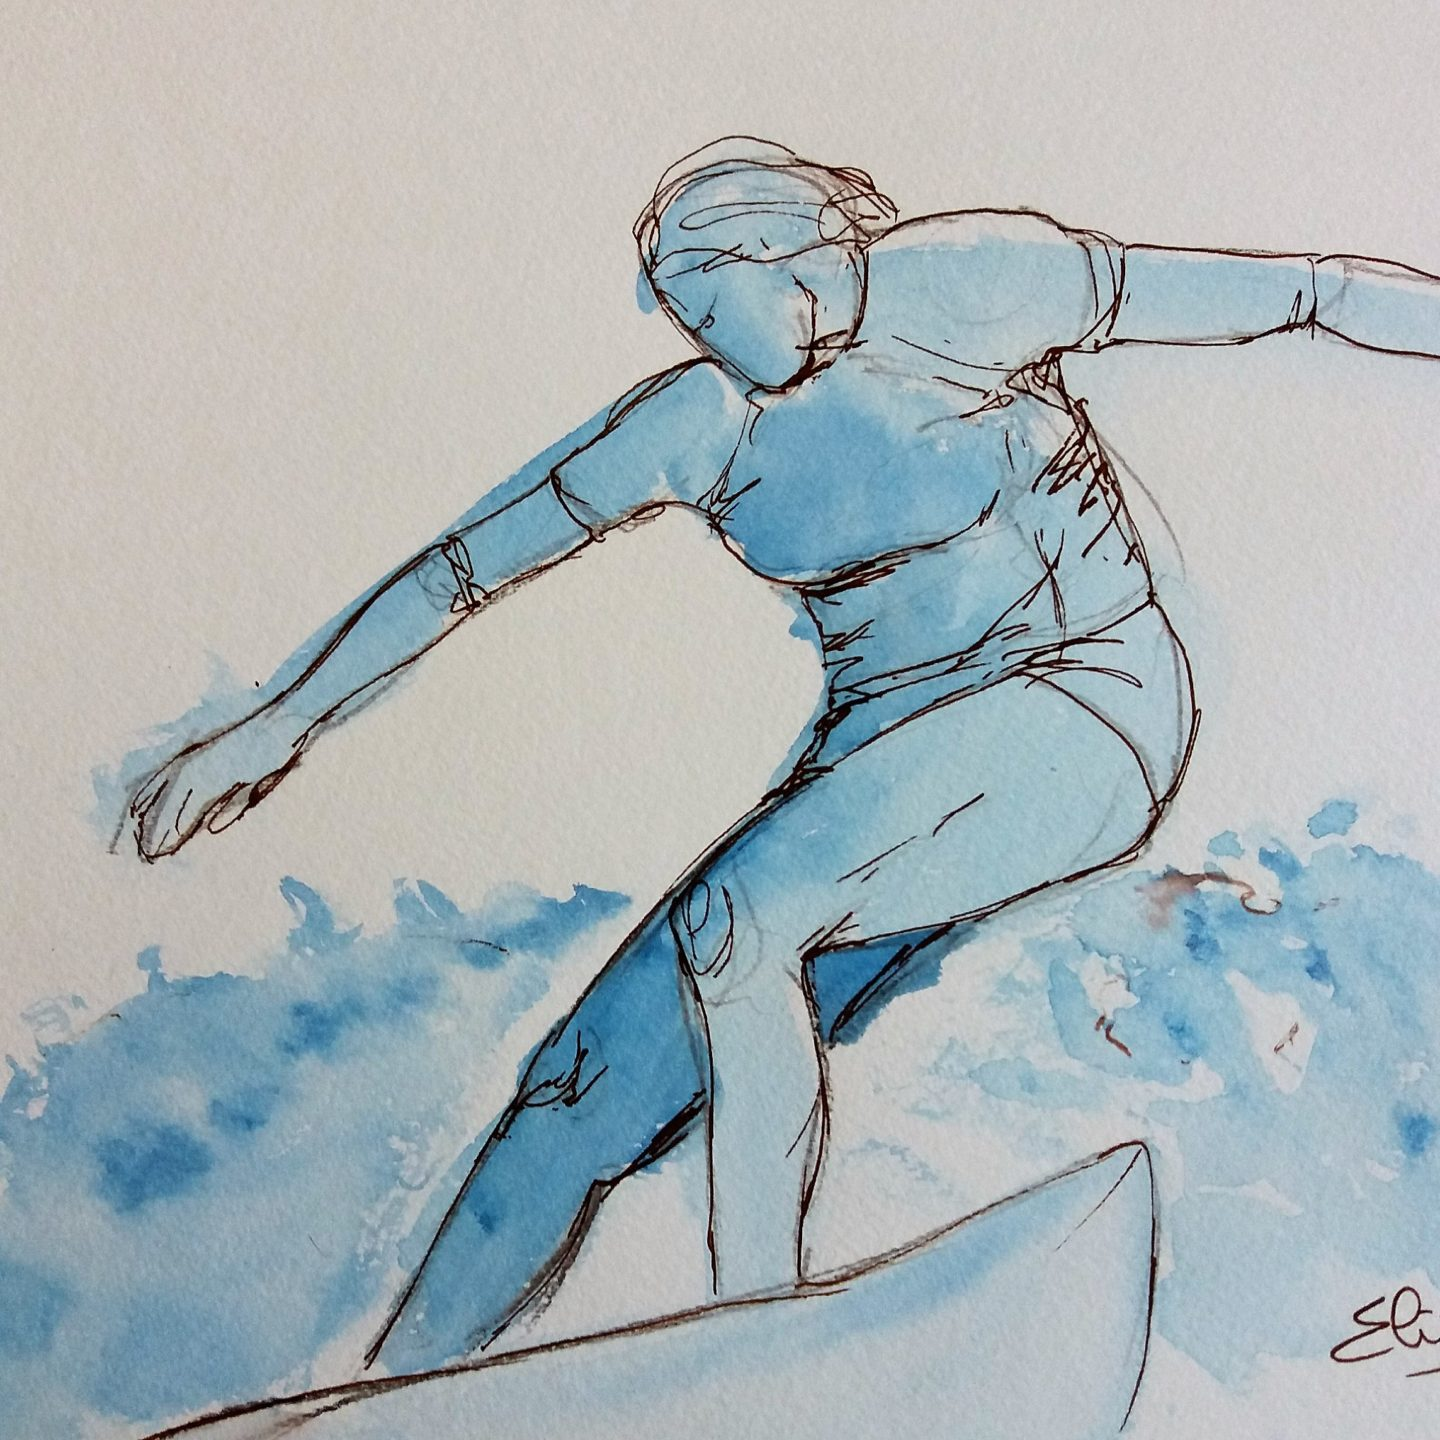 Surfer sur la vague en 4 dessins